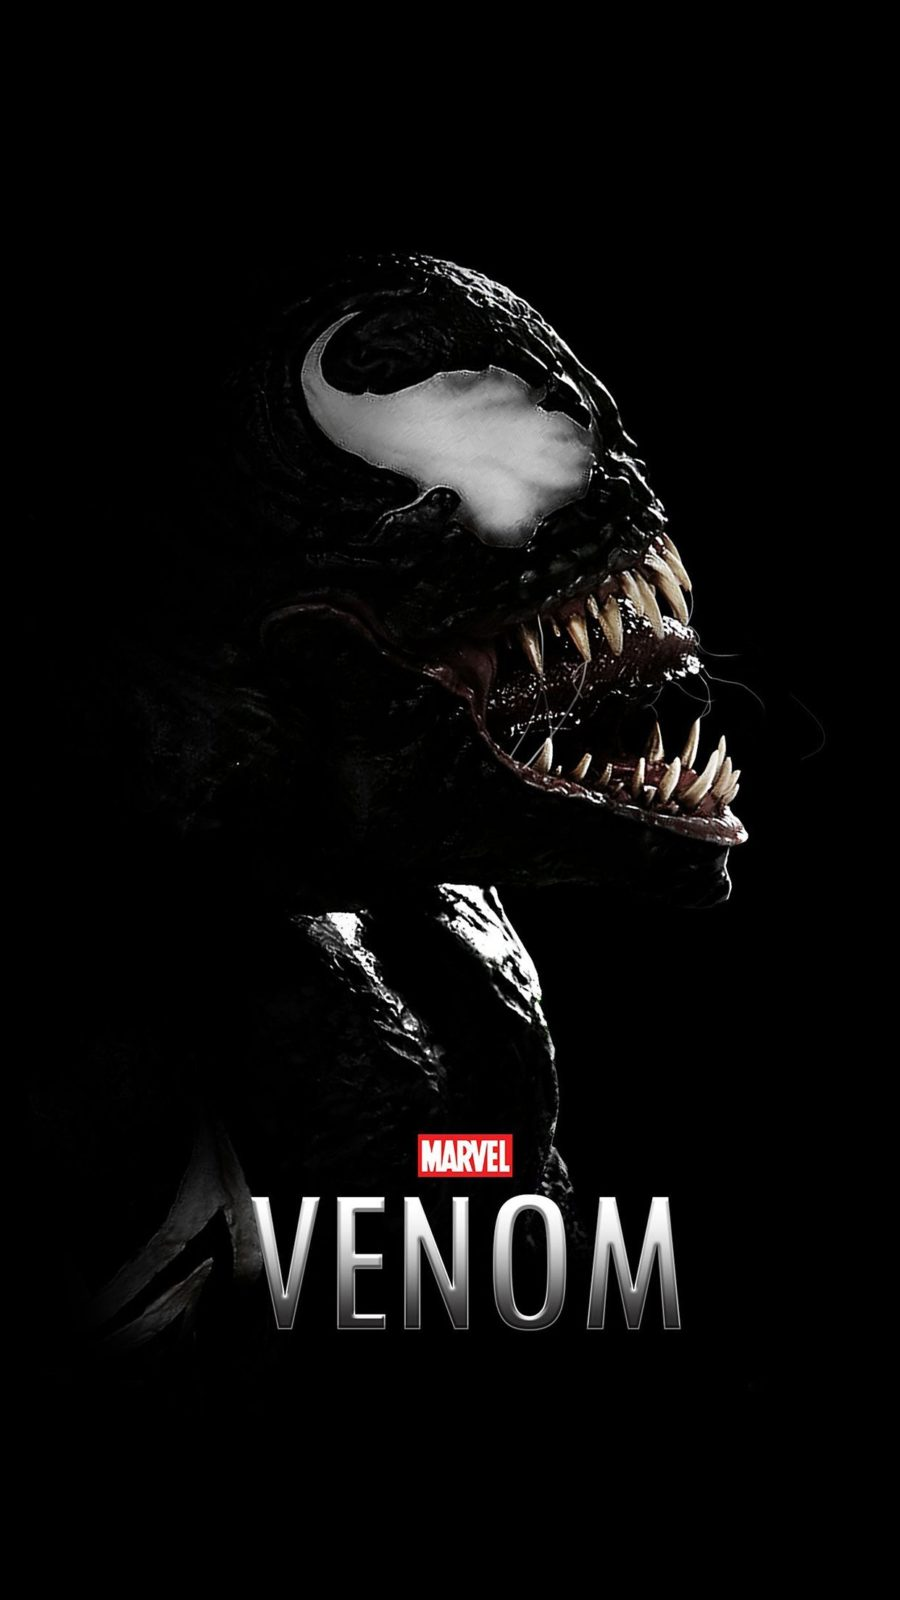 Marvel Venom Wallpaper